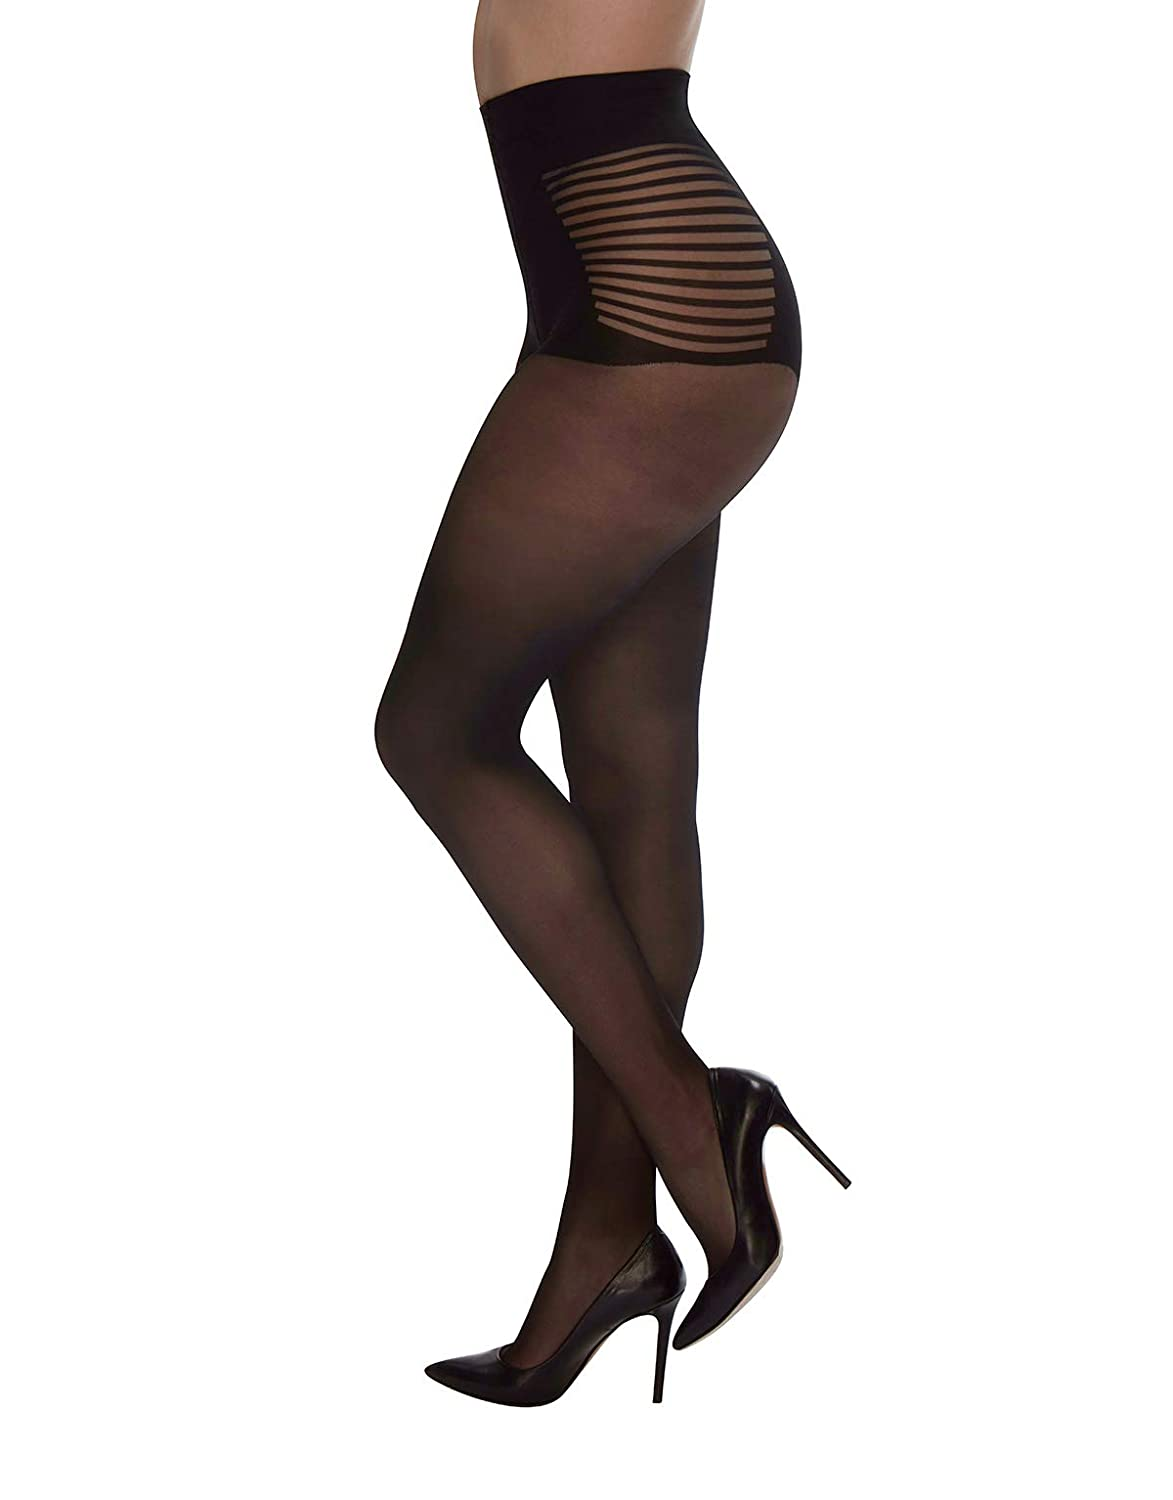 PLUS SIZE BLACK SHEER PANTYHOSE WITH STRIPED BRIEF | SEXY CURVY LADIES | 20  DEN | L, XL, XXL | ITALIAN HOSIERY | at Amazon Women's Clothing store: